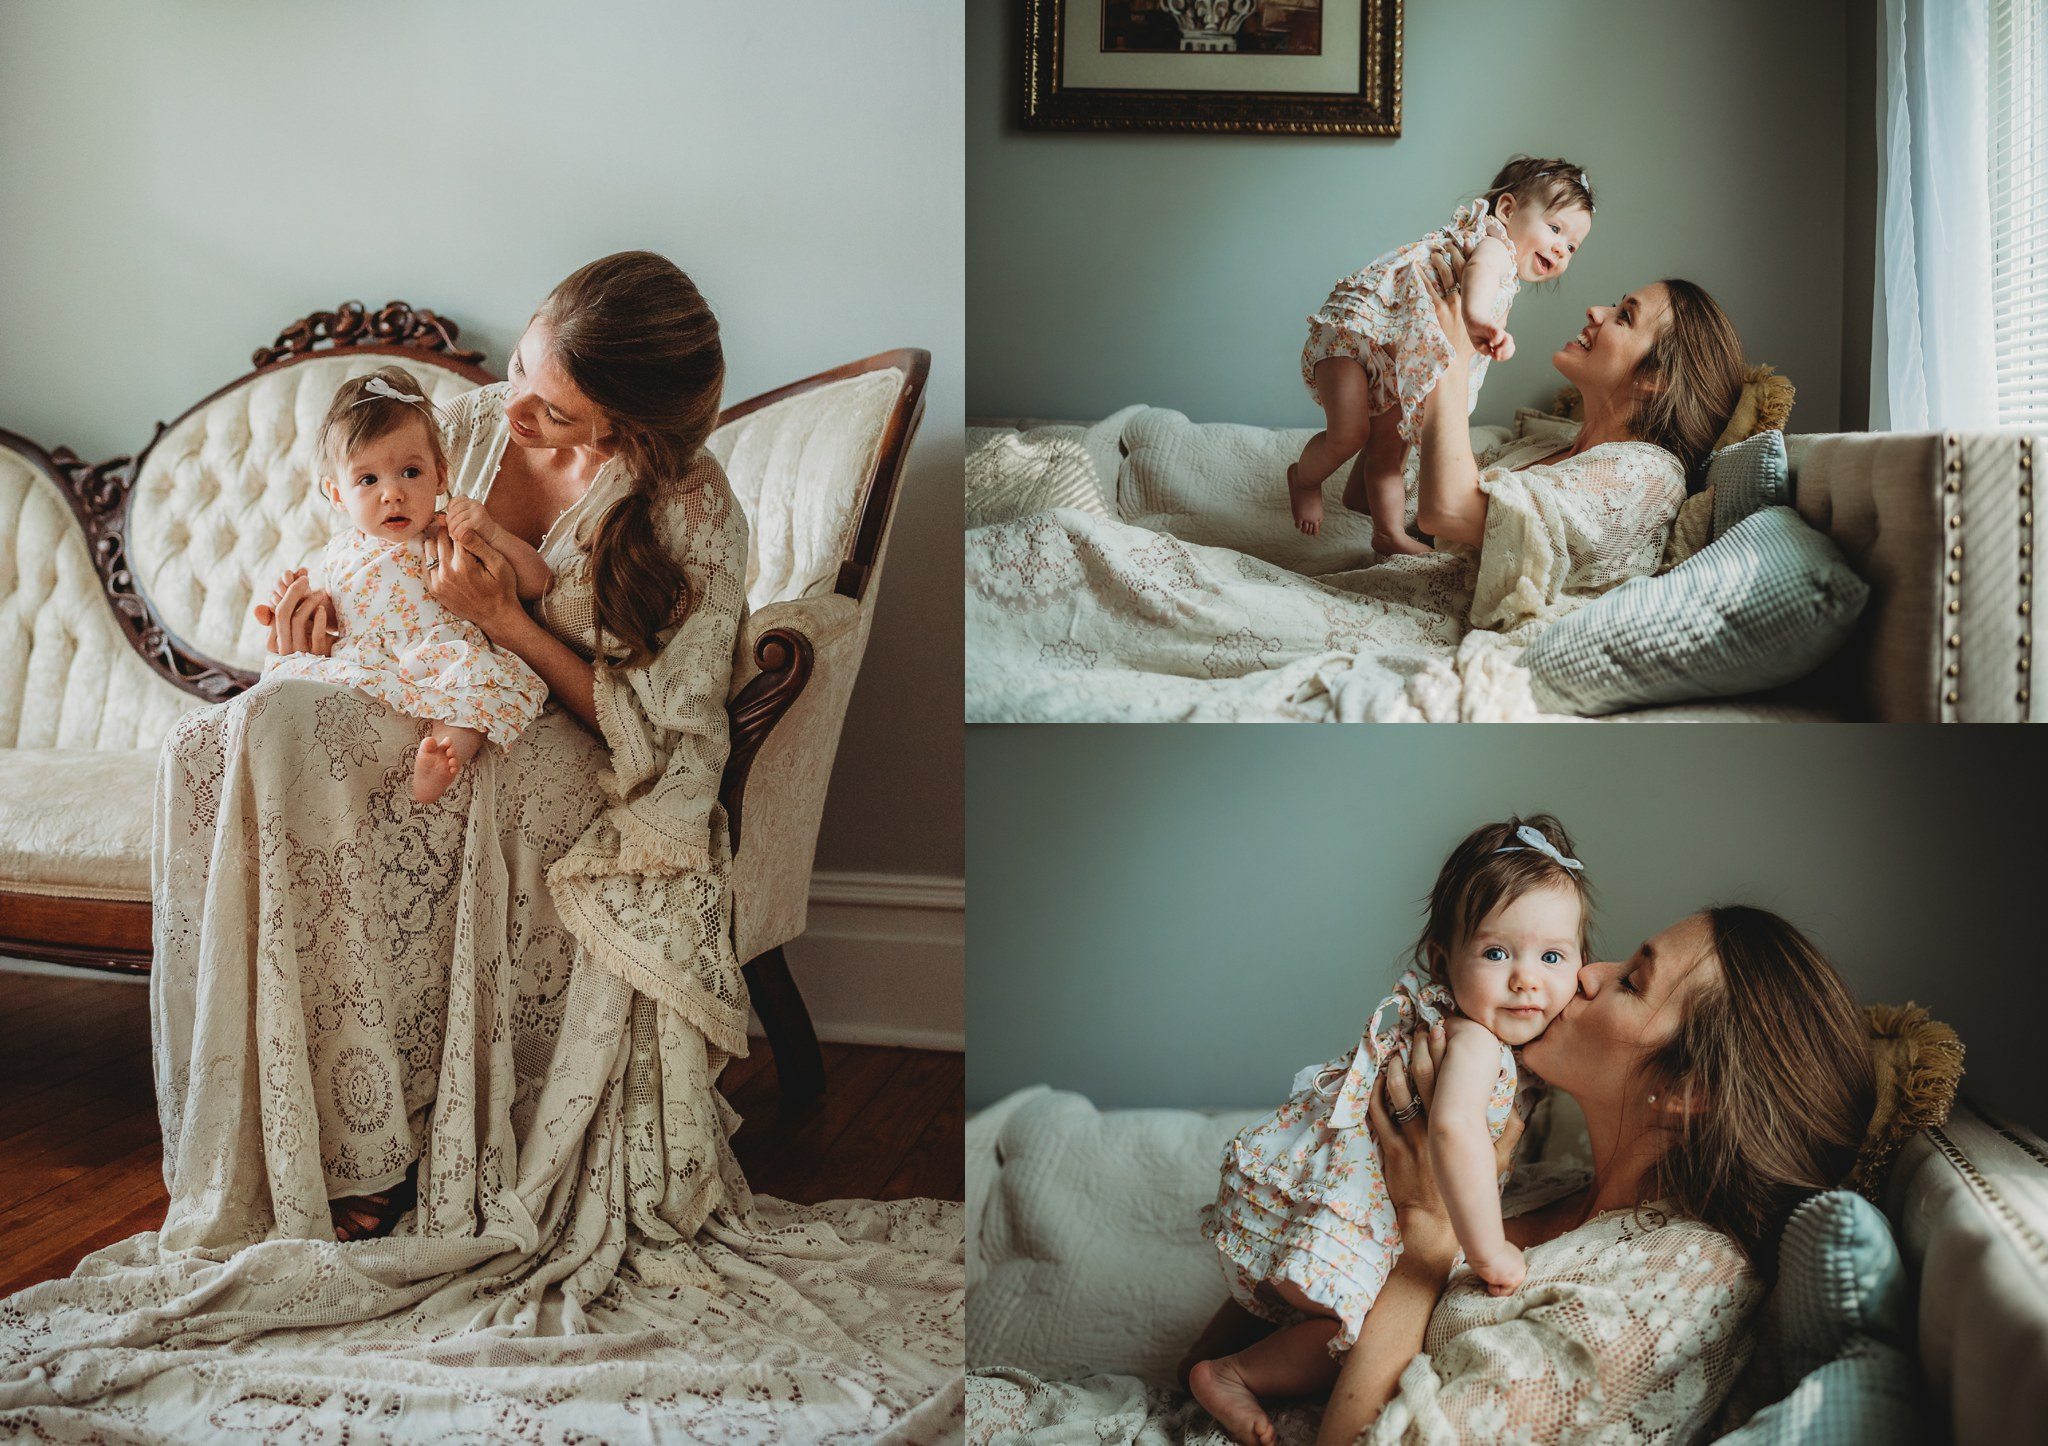 Pictures of a Mama and her baby session, with Mama in a Reclamation boho vintage lace dress at the Mason Street Manor, available for rent in Rolesville North Carolina by Rose Trail Images.